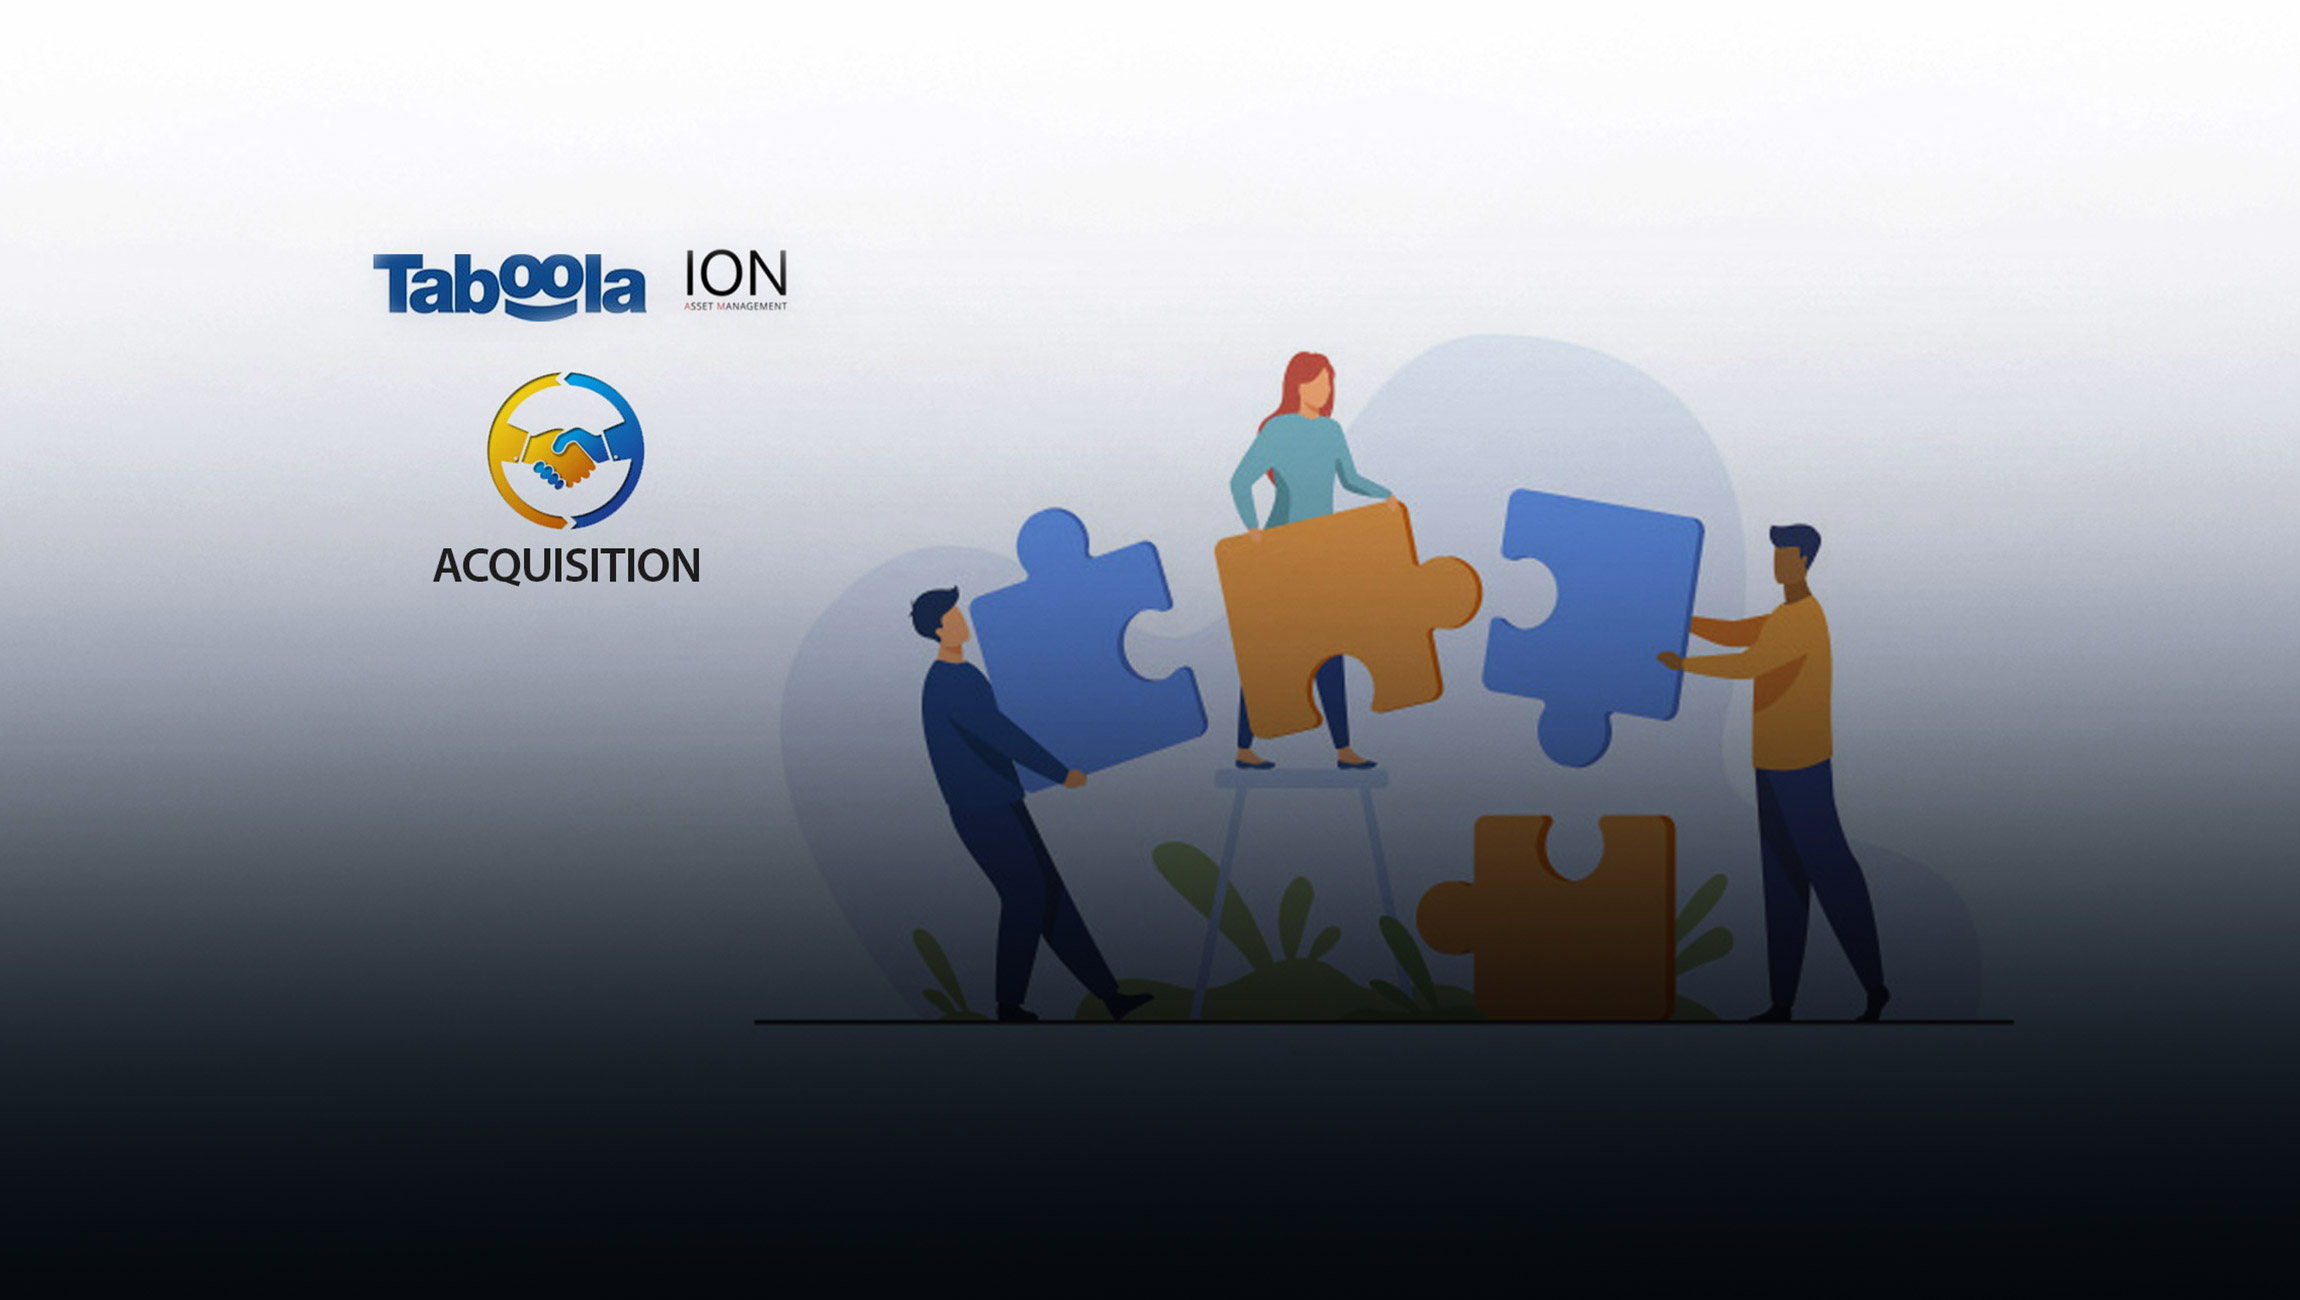 Taboola, a Global Leader In Powering Recommendations for the Open Web, to Become NYSE Listed at an Implied $2.6 Billion Valuation via a Merger with ION Acquisition Corp. 1 Ltd.